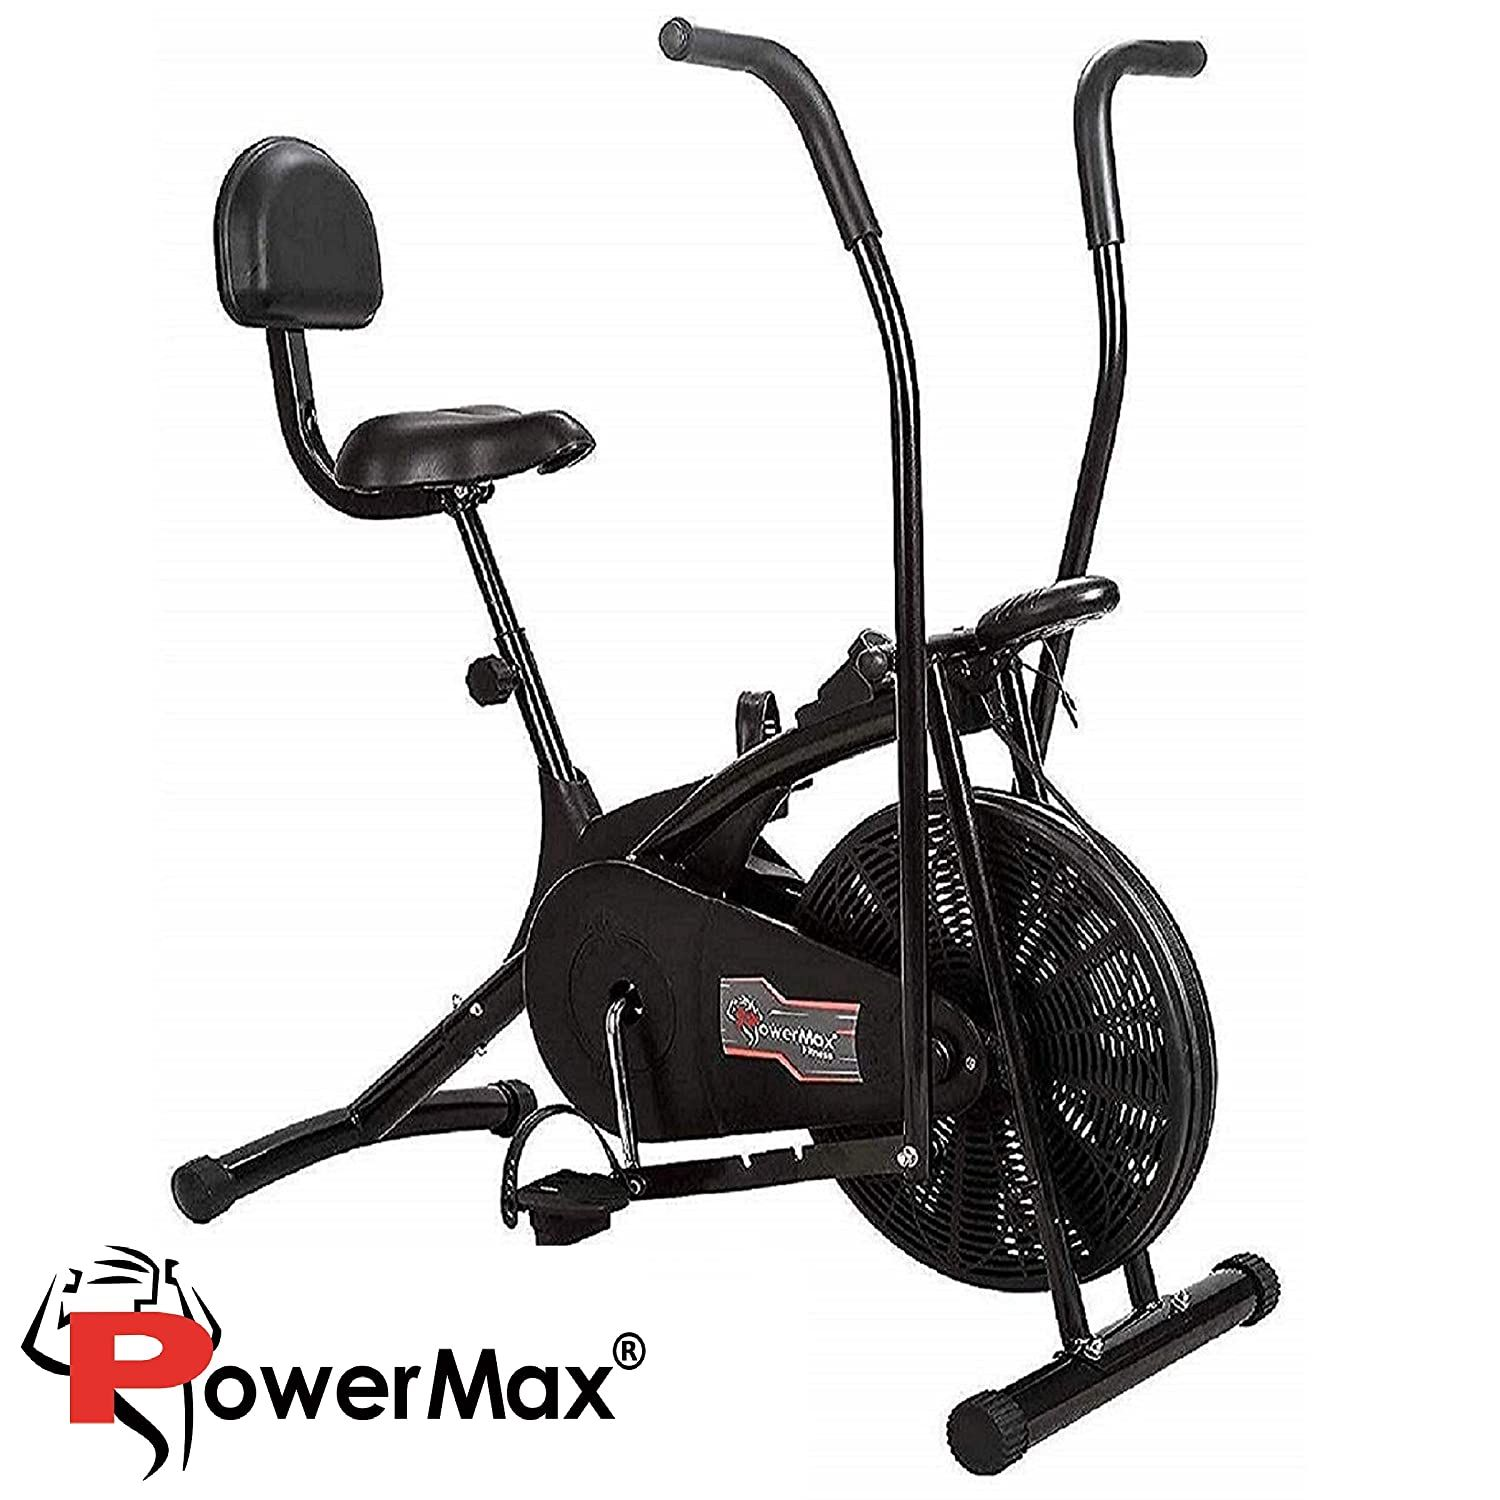 Best Selling Air Bike Fitness Exercise Cycle In 2020 2021 For Gym Home Use In 2020 Biking Workout Cycling Workout Best Exercise Bike